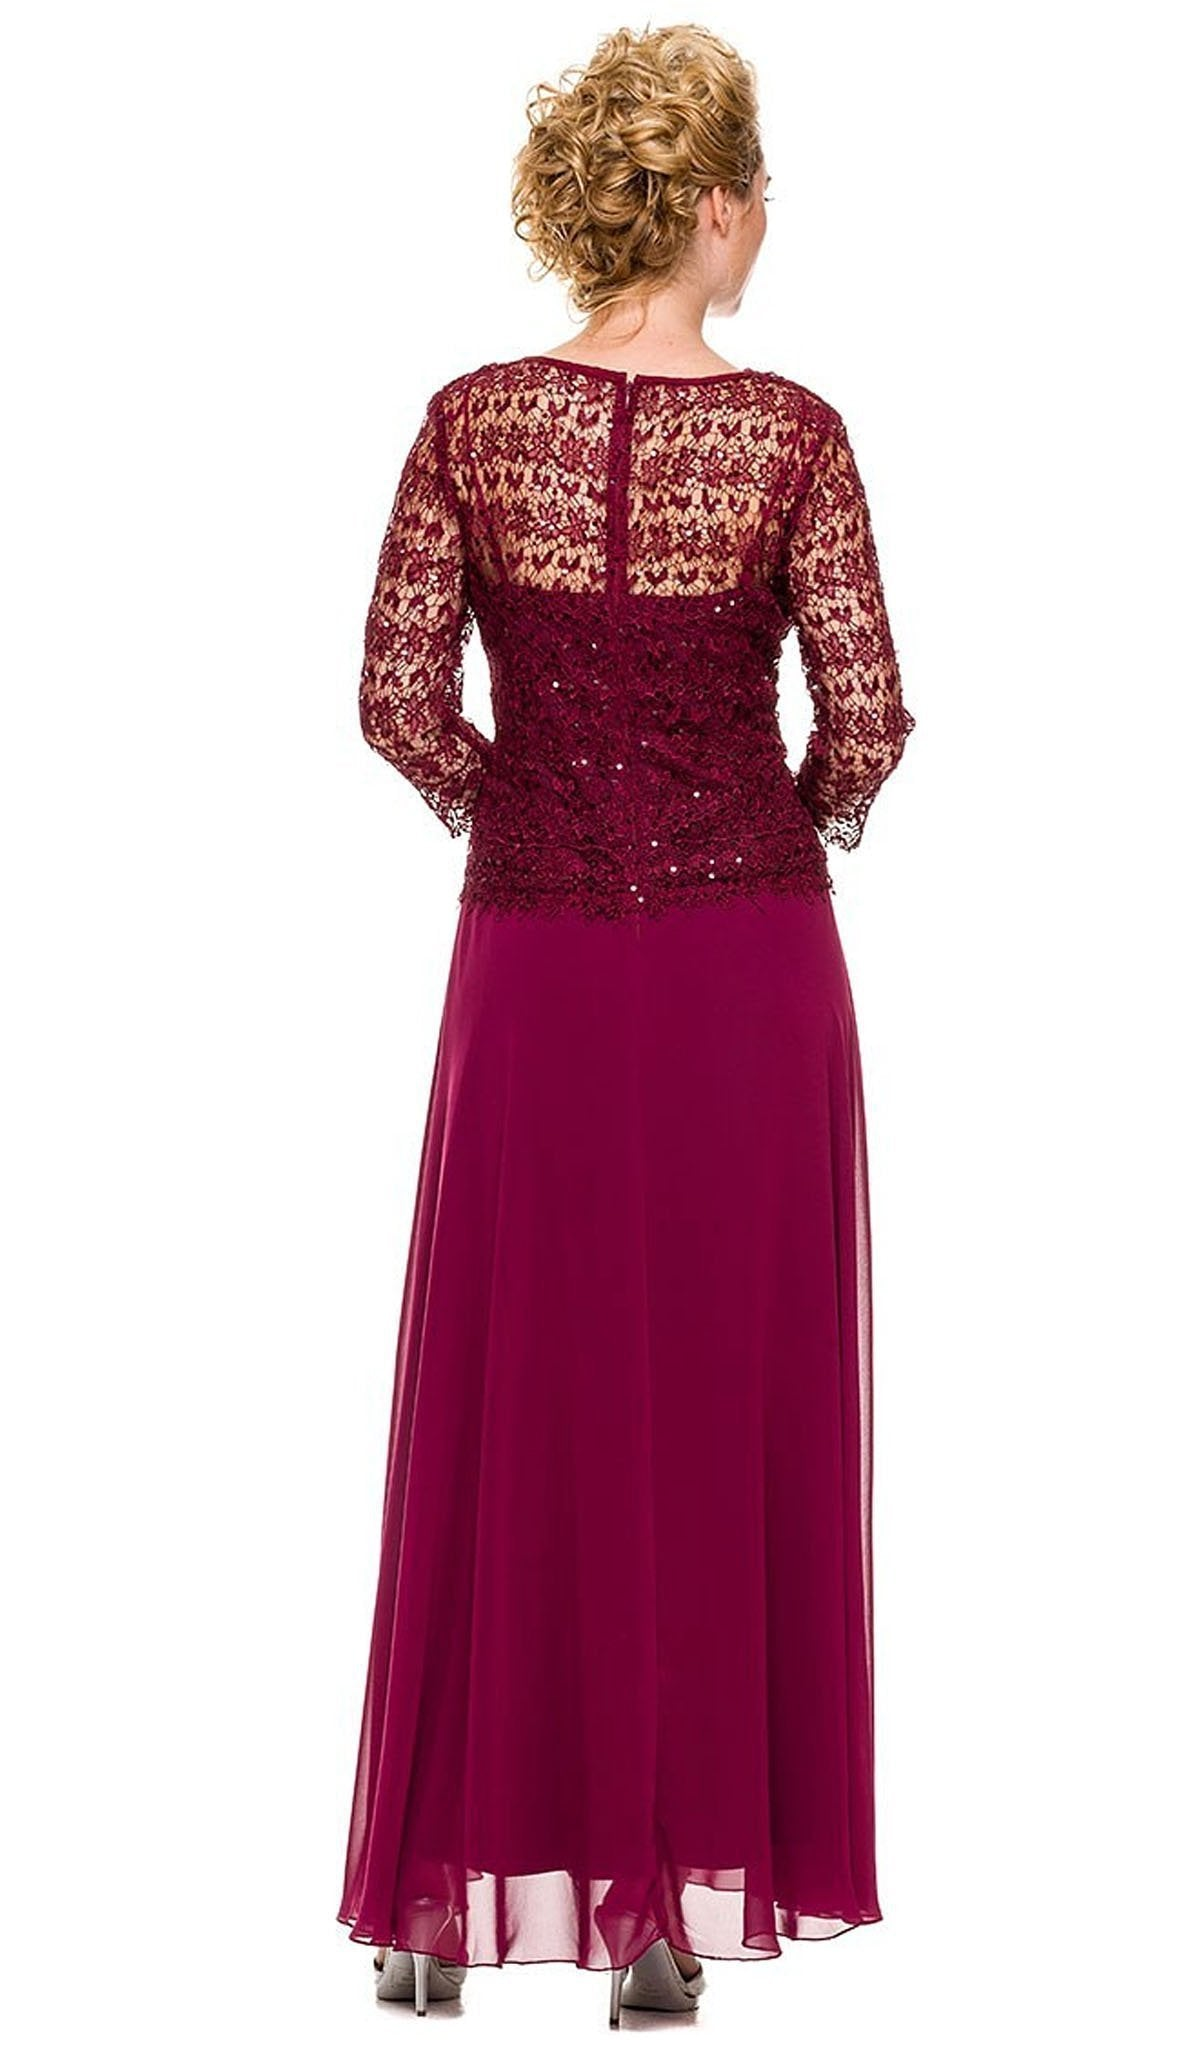 Nox Anabel - 5083SC Quarter Sleeves Lace Overlay Top Long Formal Dress